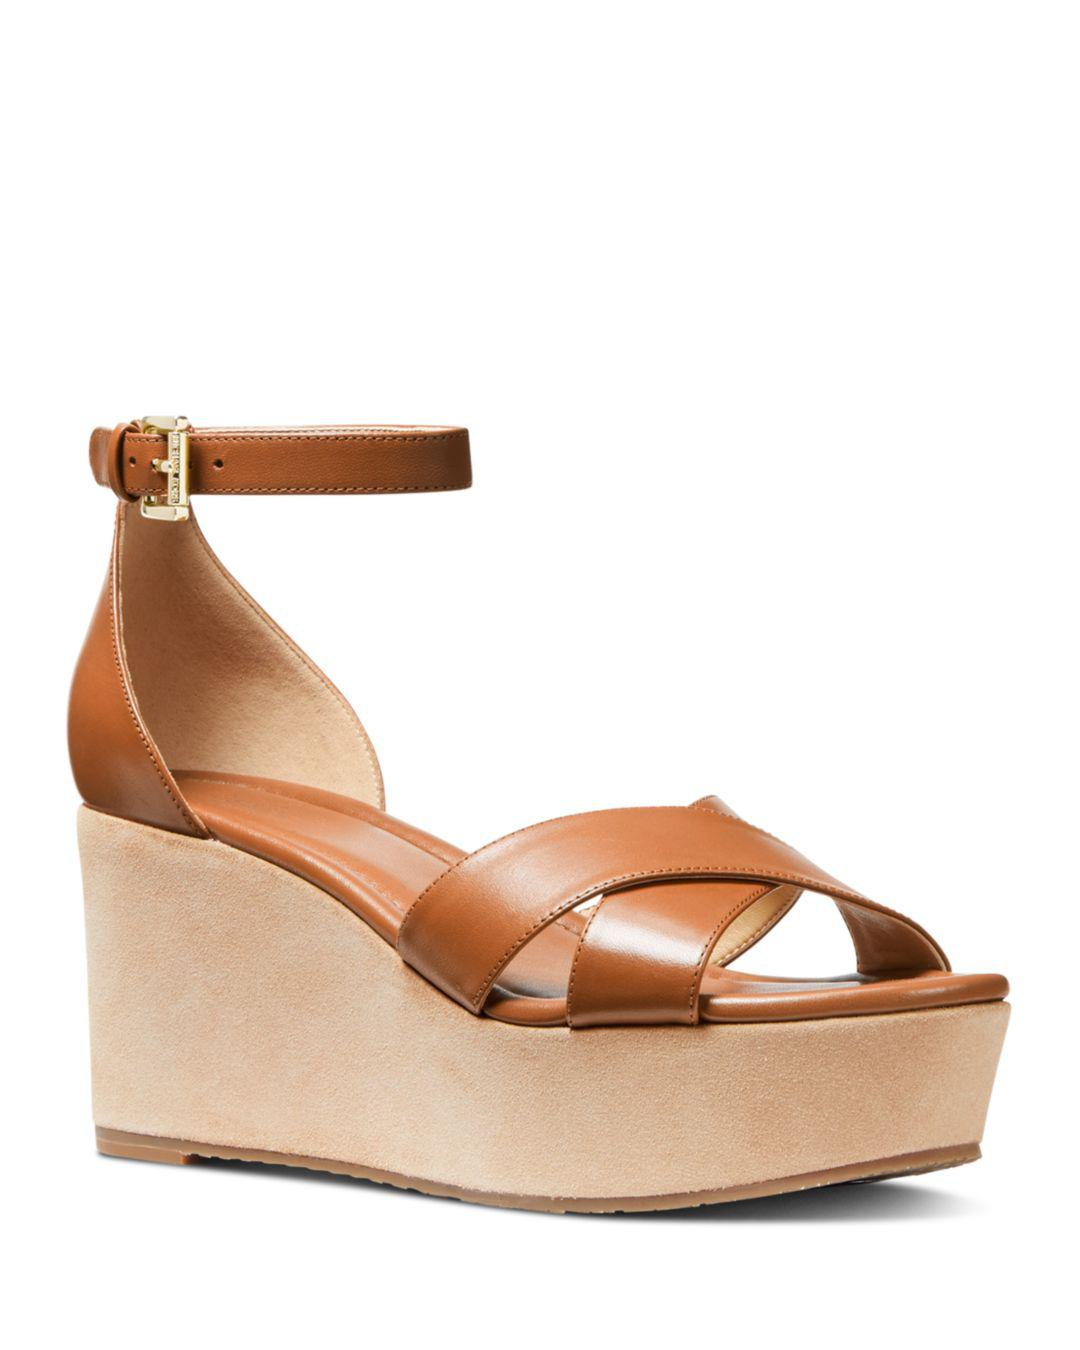 031958a3b81 Lyst - MICHAEL Michael Kors Women s Desiree Wedge Sandals in Brown